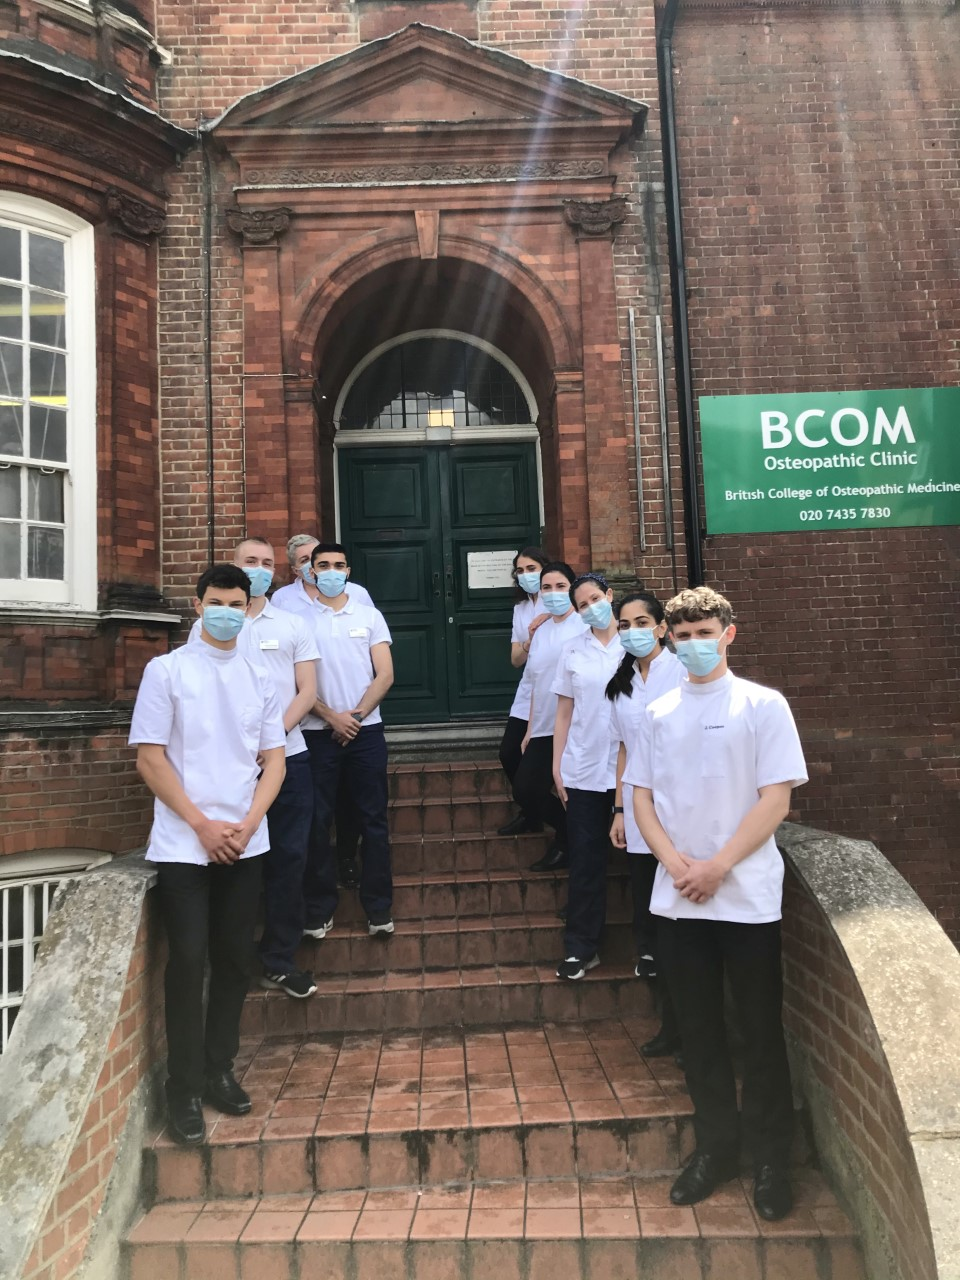 Physiotherapy students start their placement at BCOM